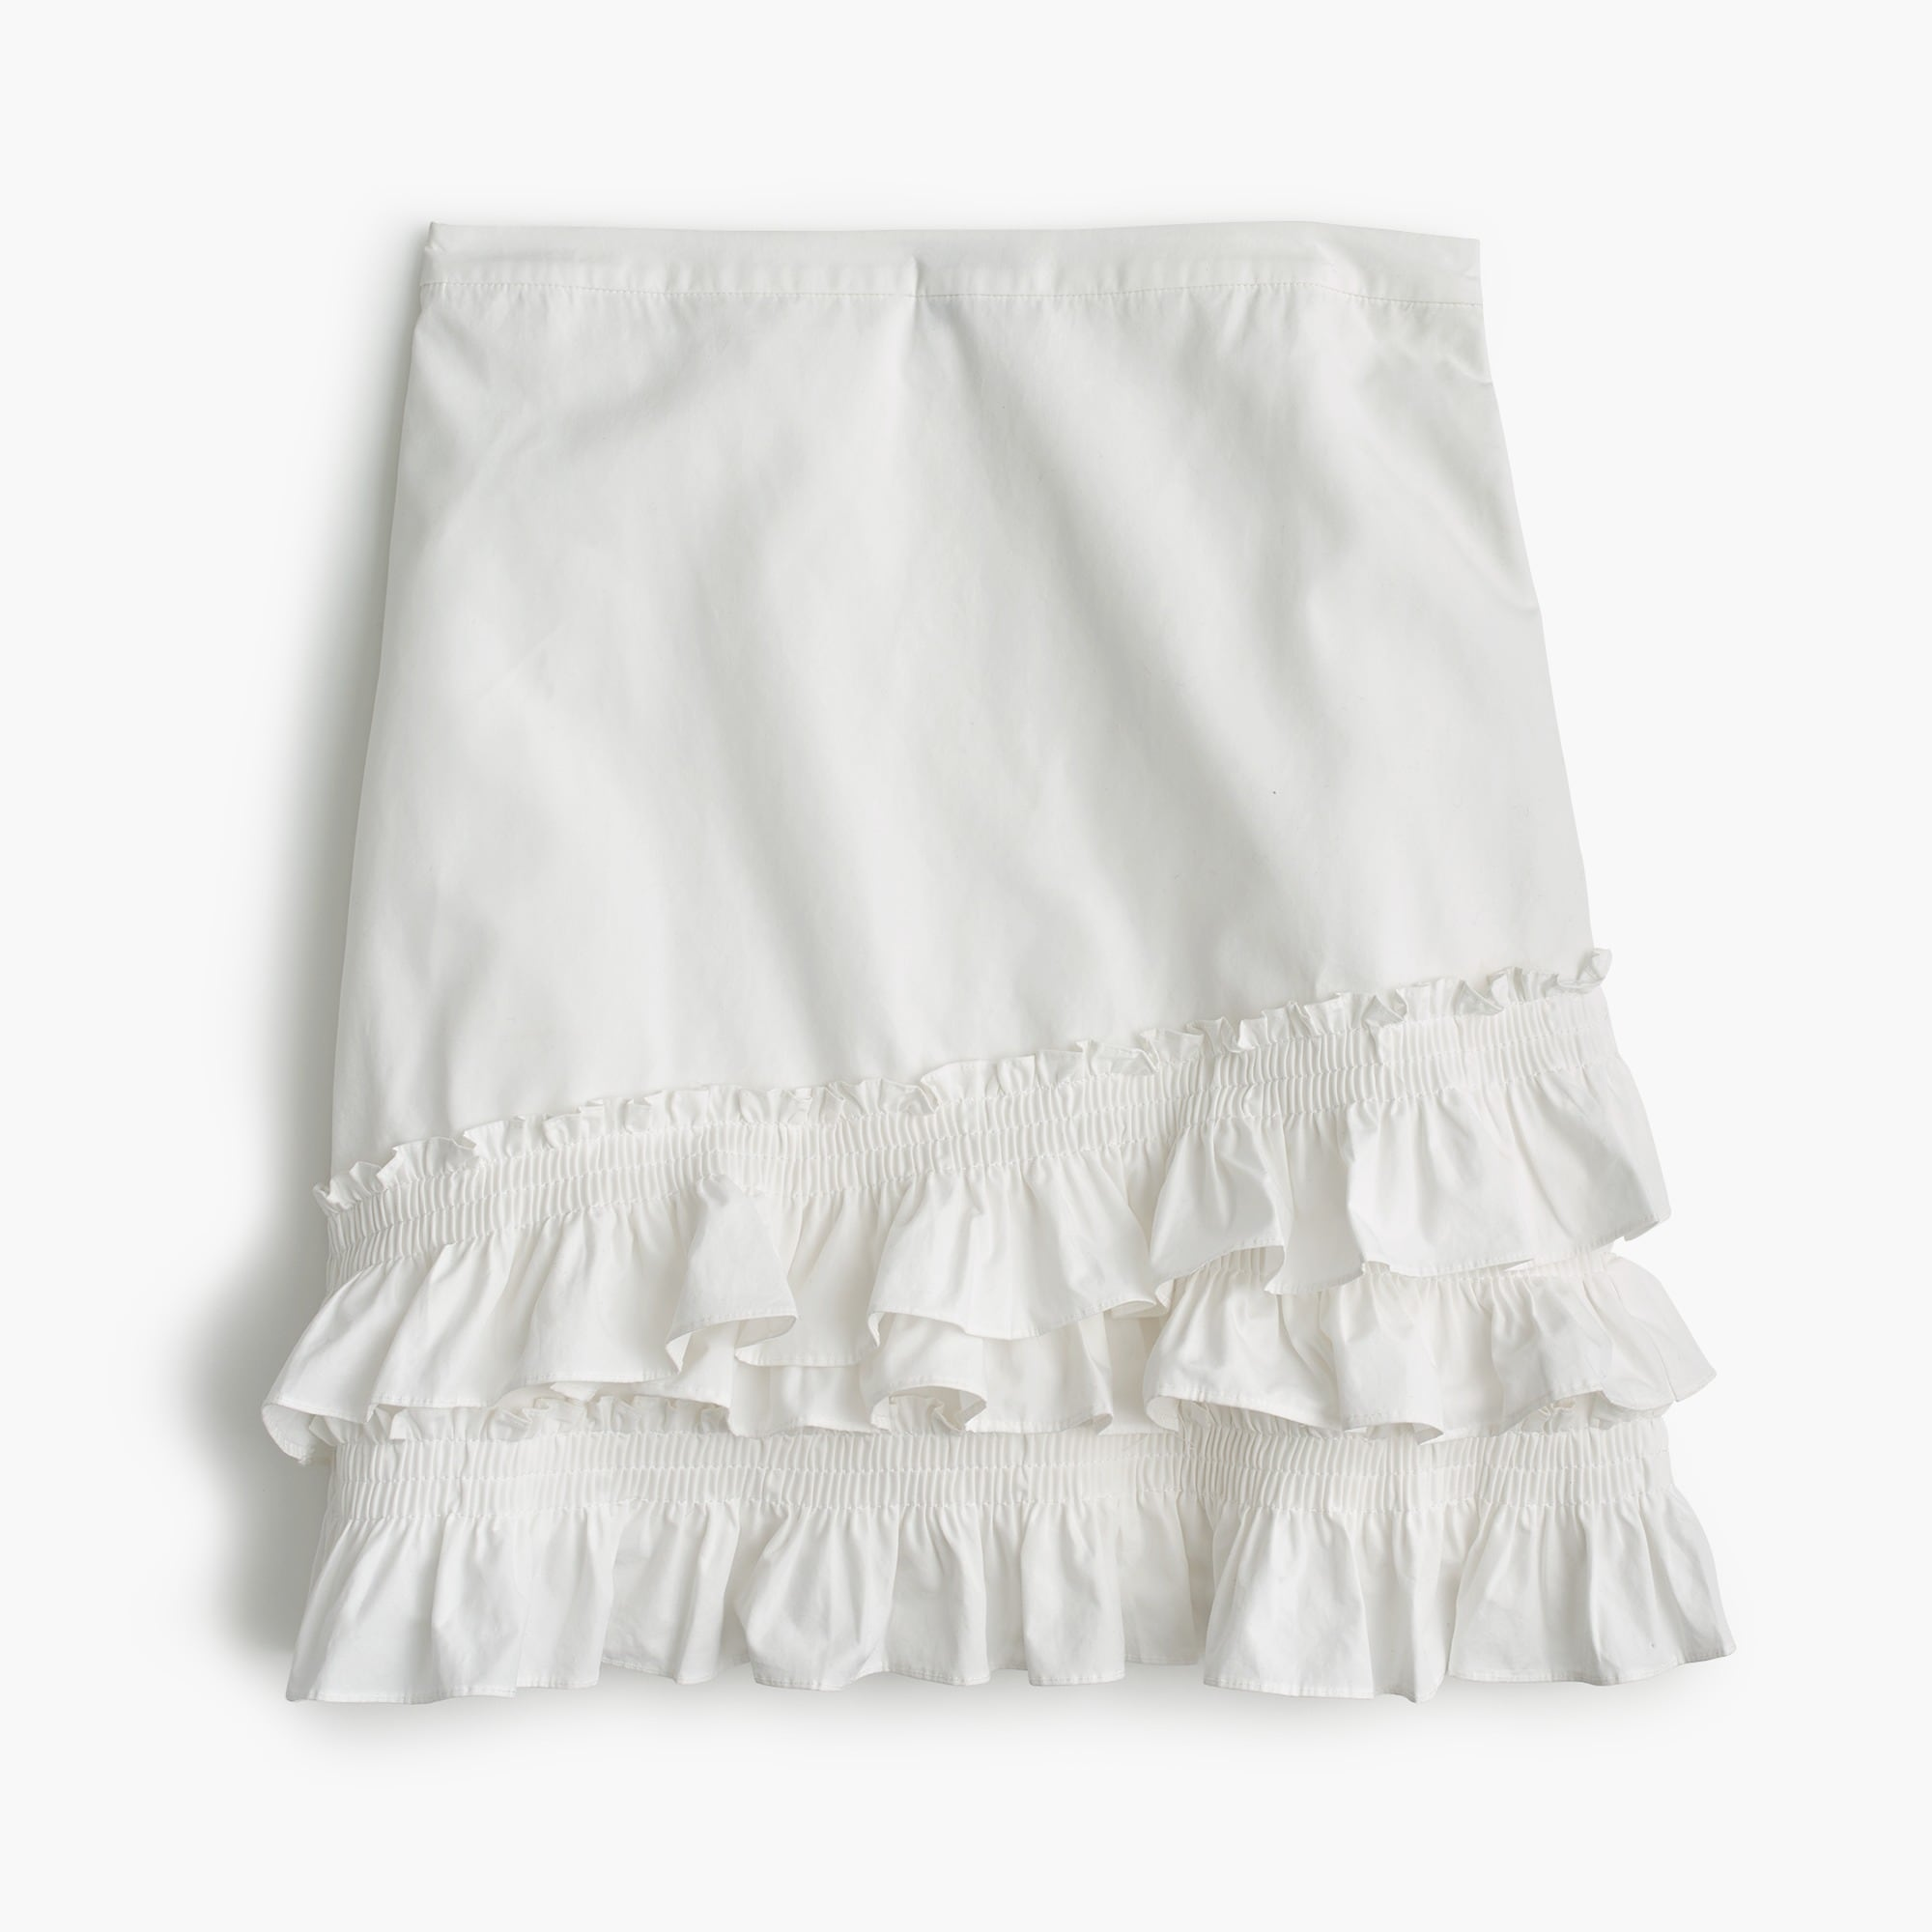 Image 1 for Tall ruffle skirt in cotton-poplin